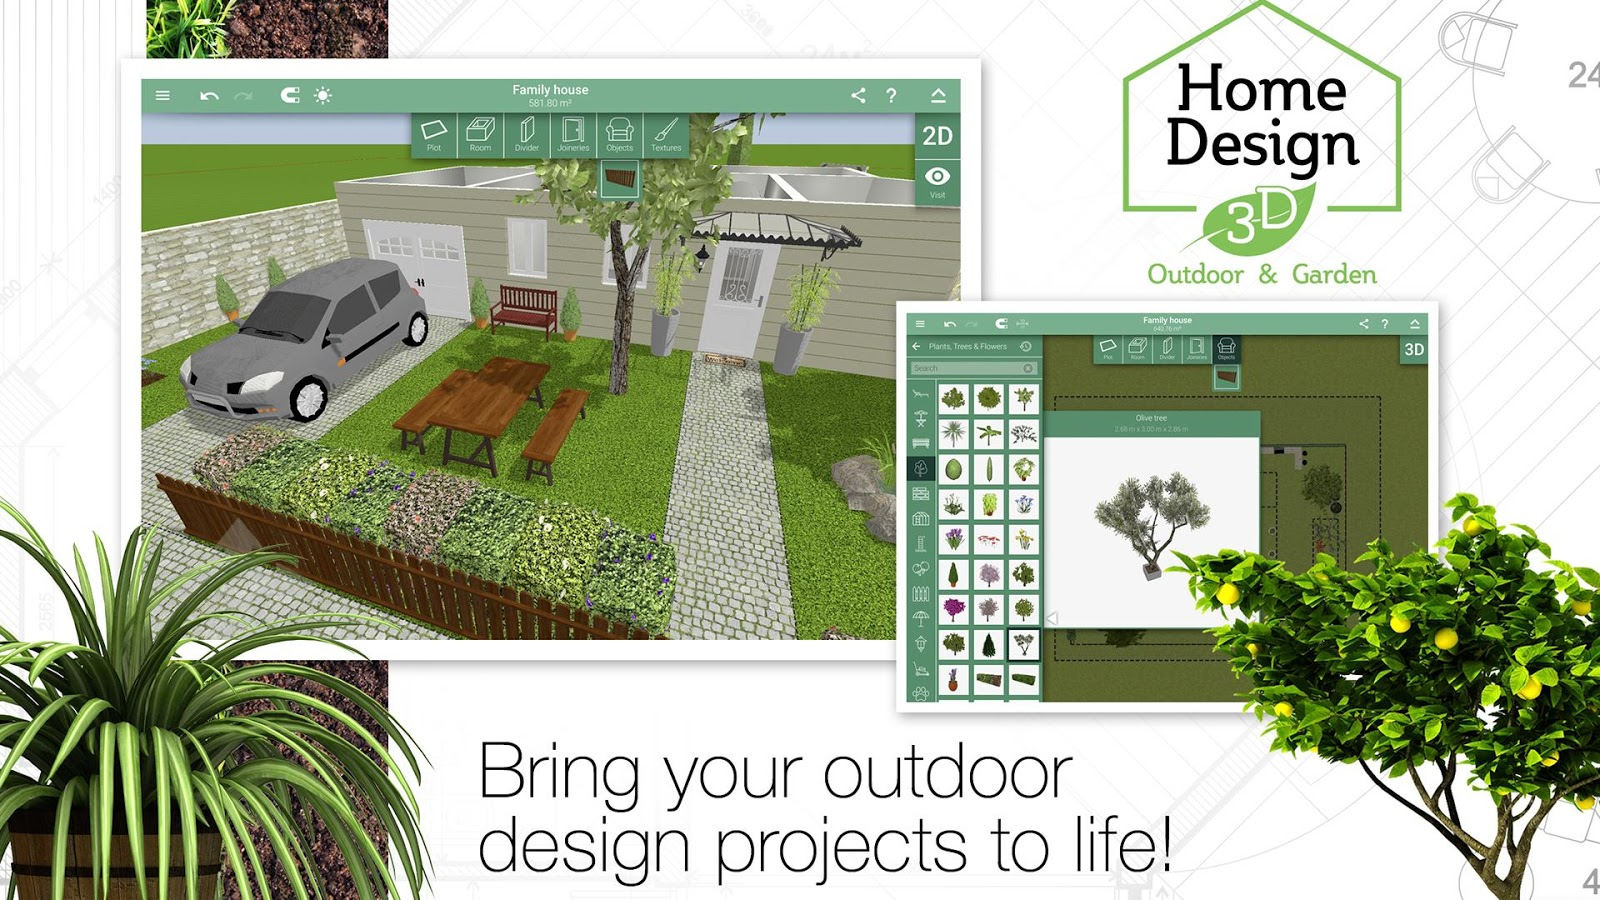 Home design 3d outdoor garden android apps on google play for Garden design 3d mac